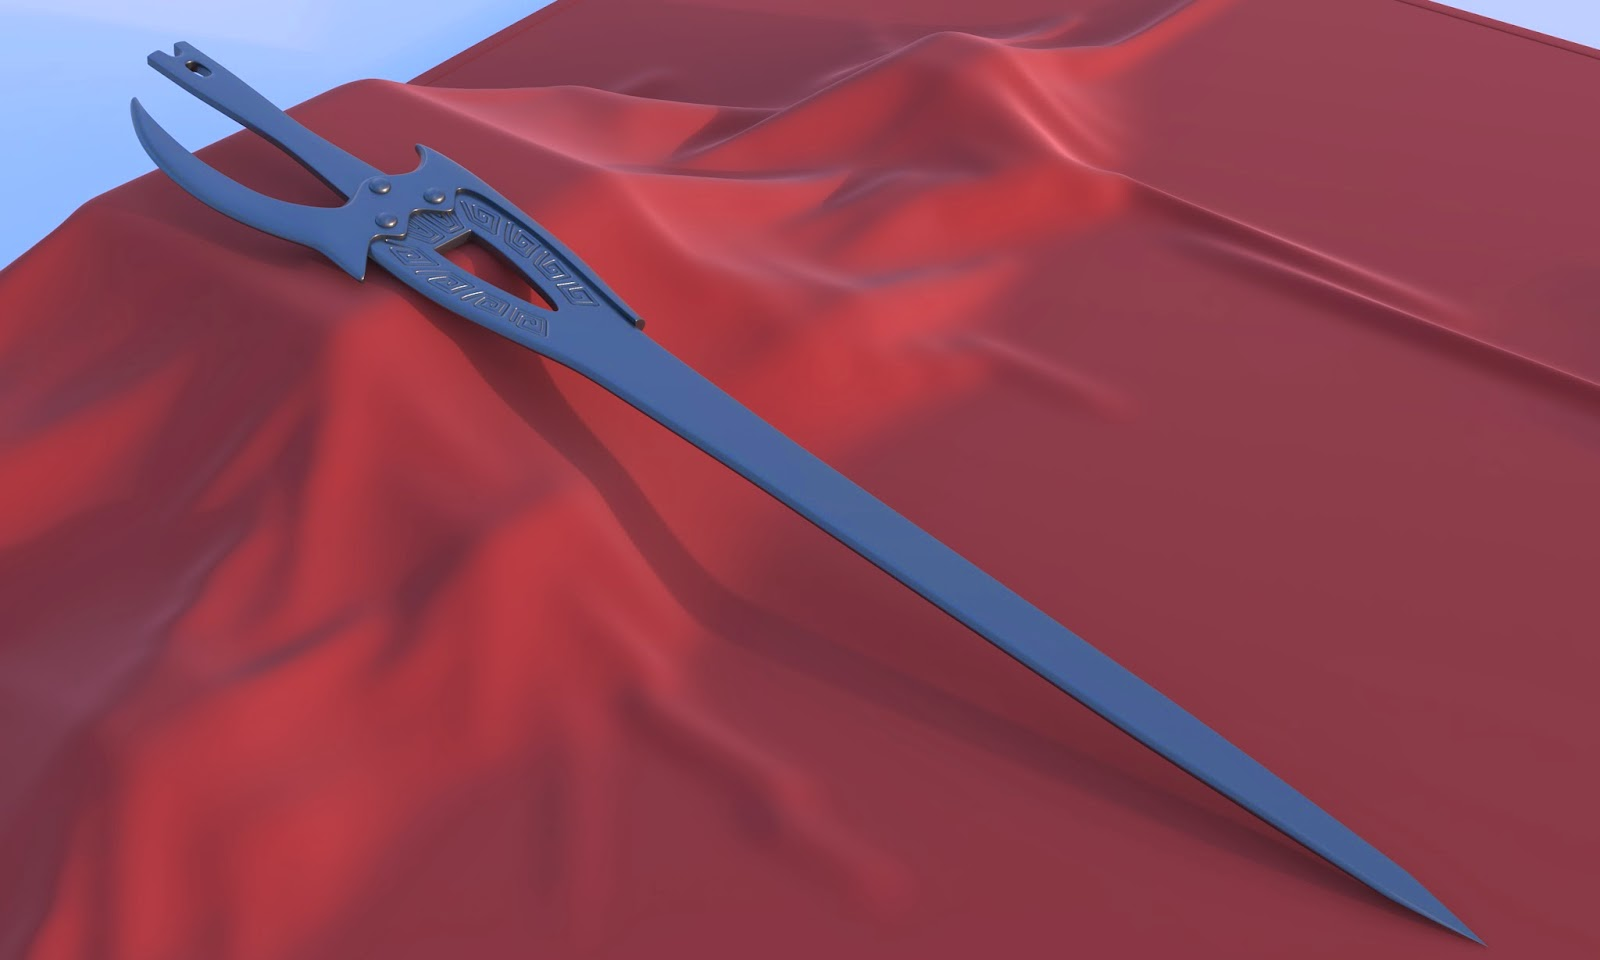 The Sword of Ultimate Superiority